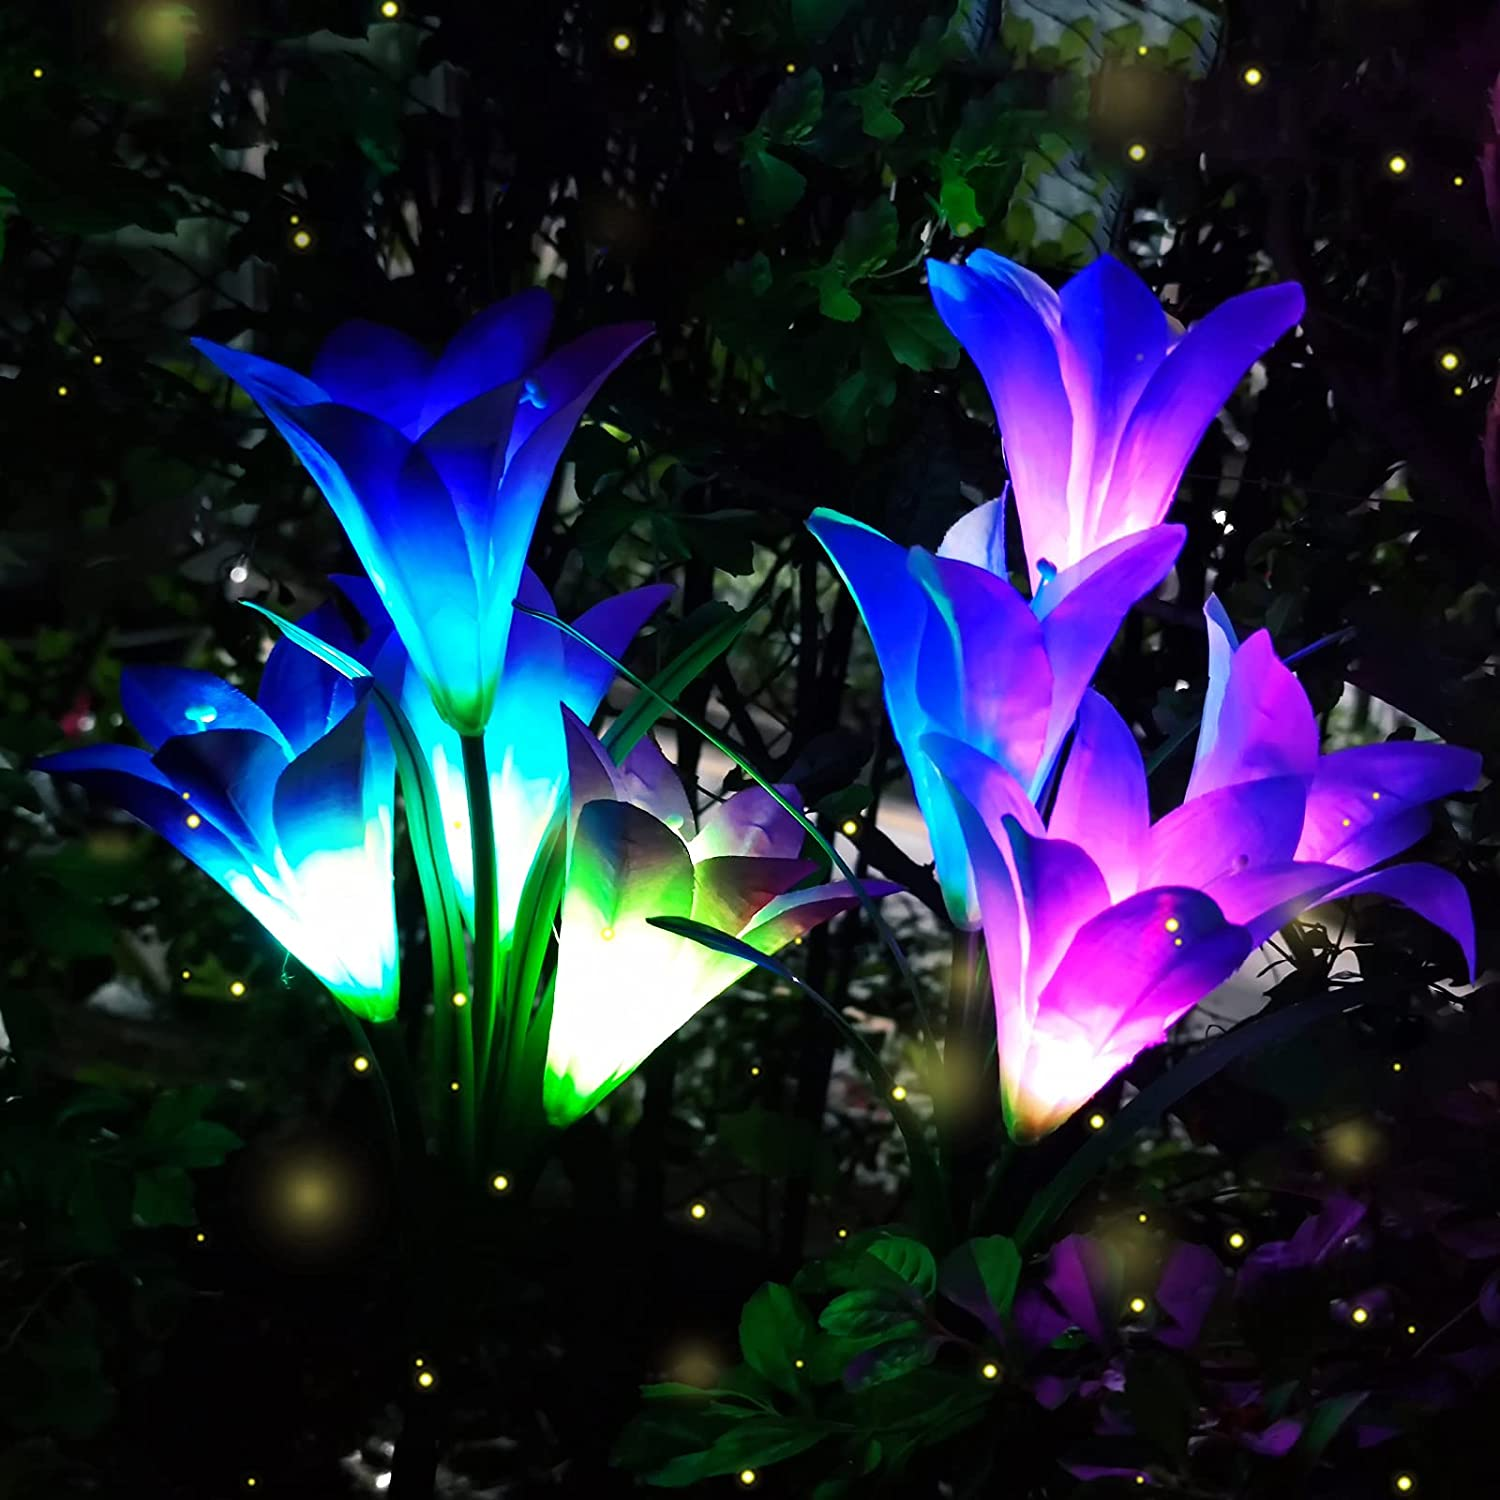 Solar Garden Flower Lights Outdoor Decorative Lily Size 4.3 inch, 28 inch High, 7 Discoloration, 2pack (Blue x1 Purple x1)